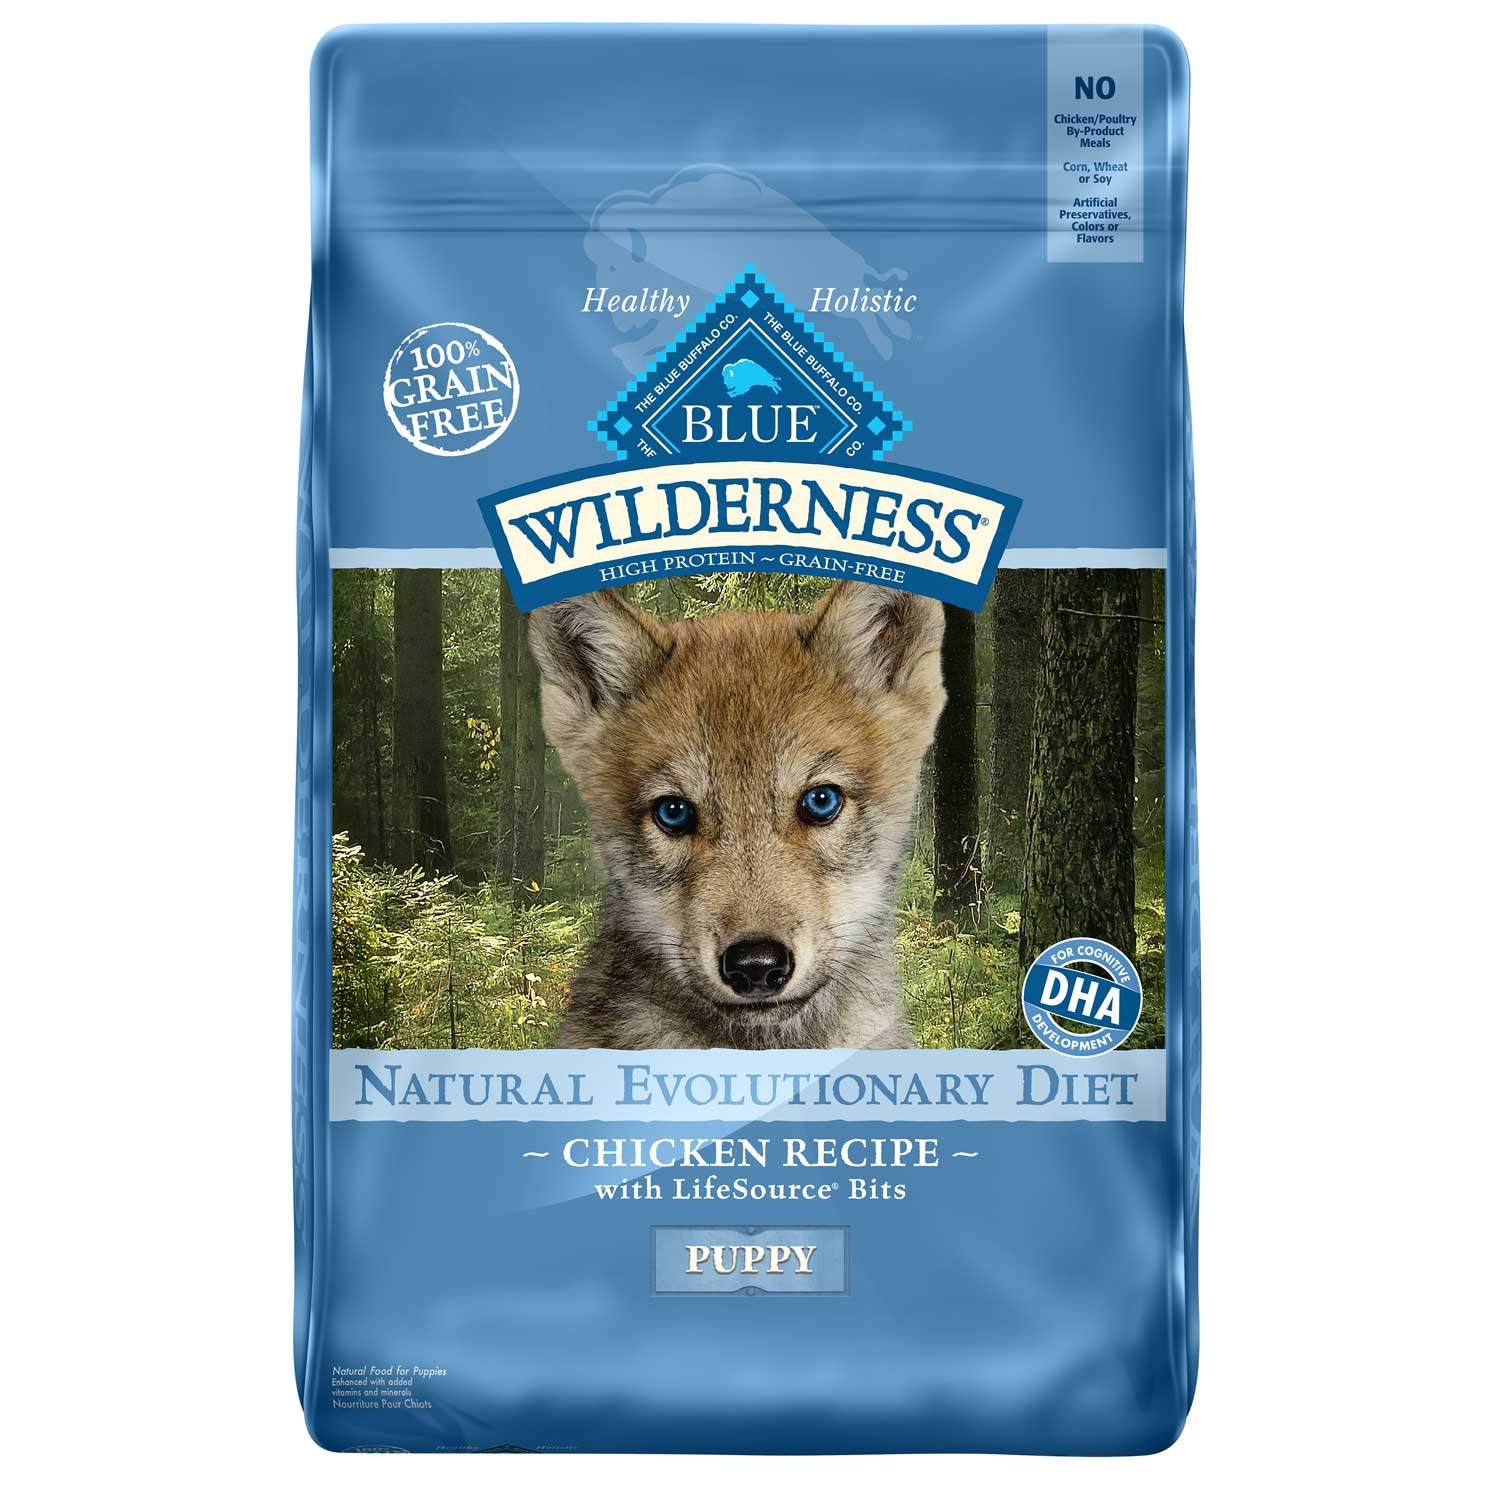 Blue Buffalo Blue Wilderness Puppy Chicken Recipe Dry Dog Food